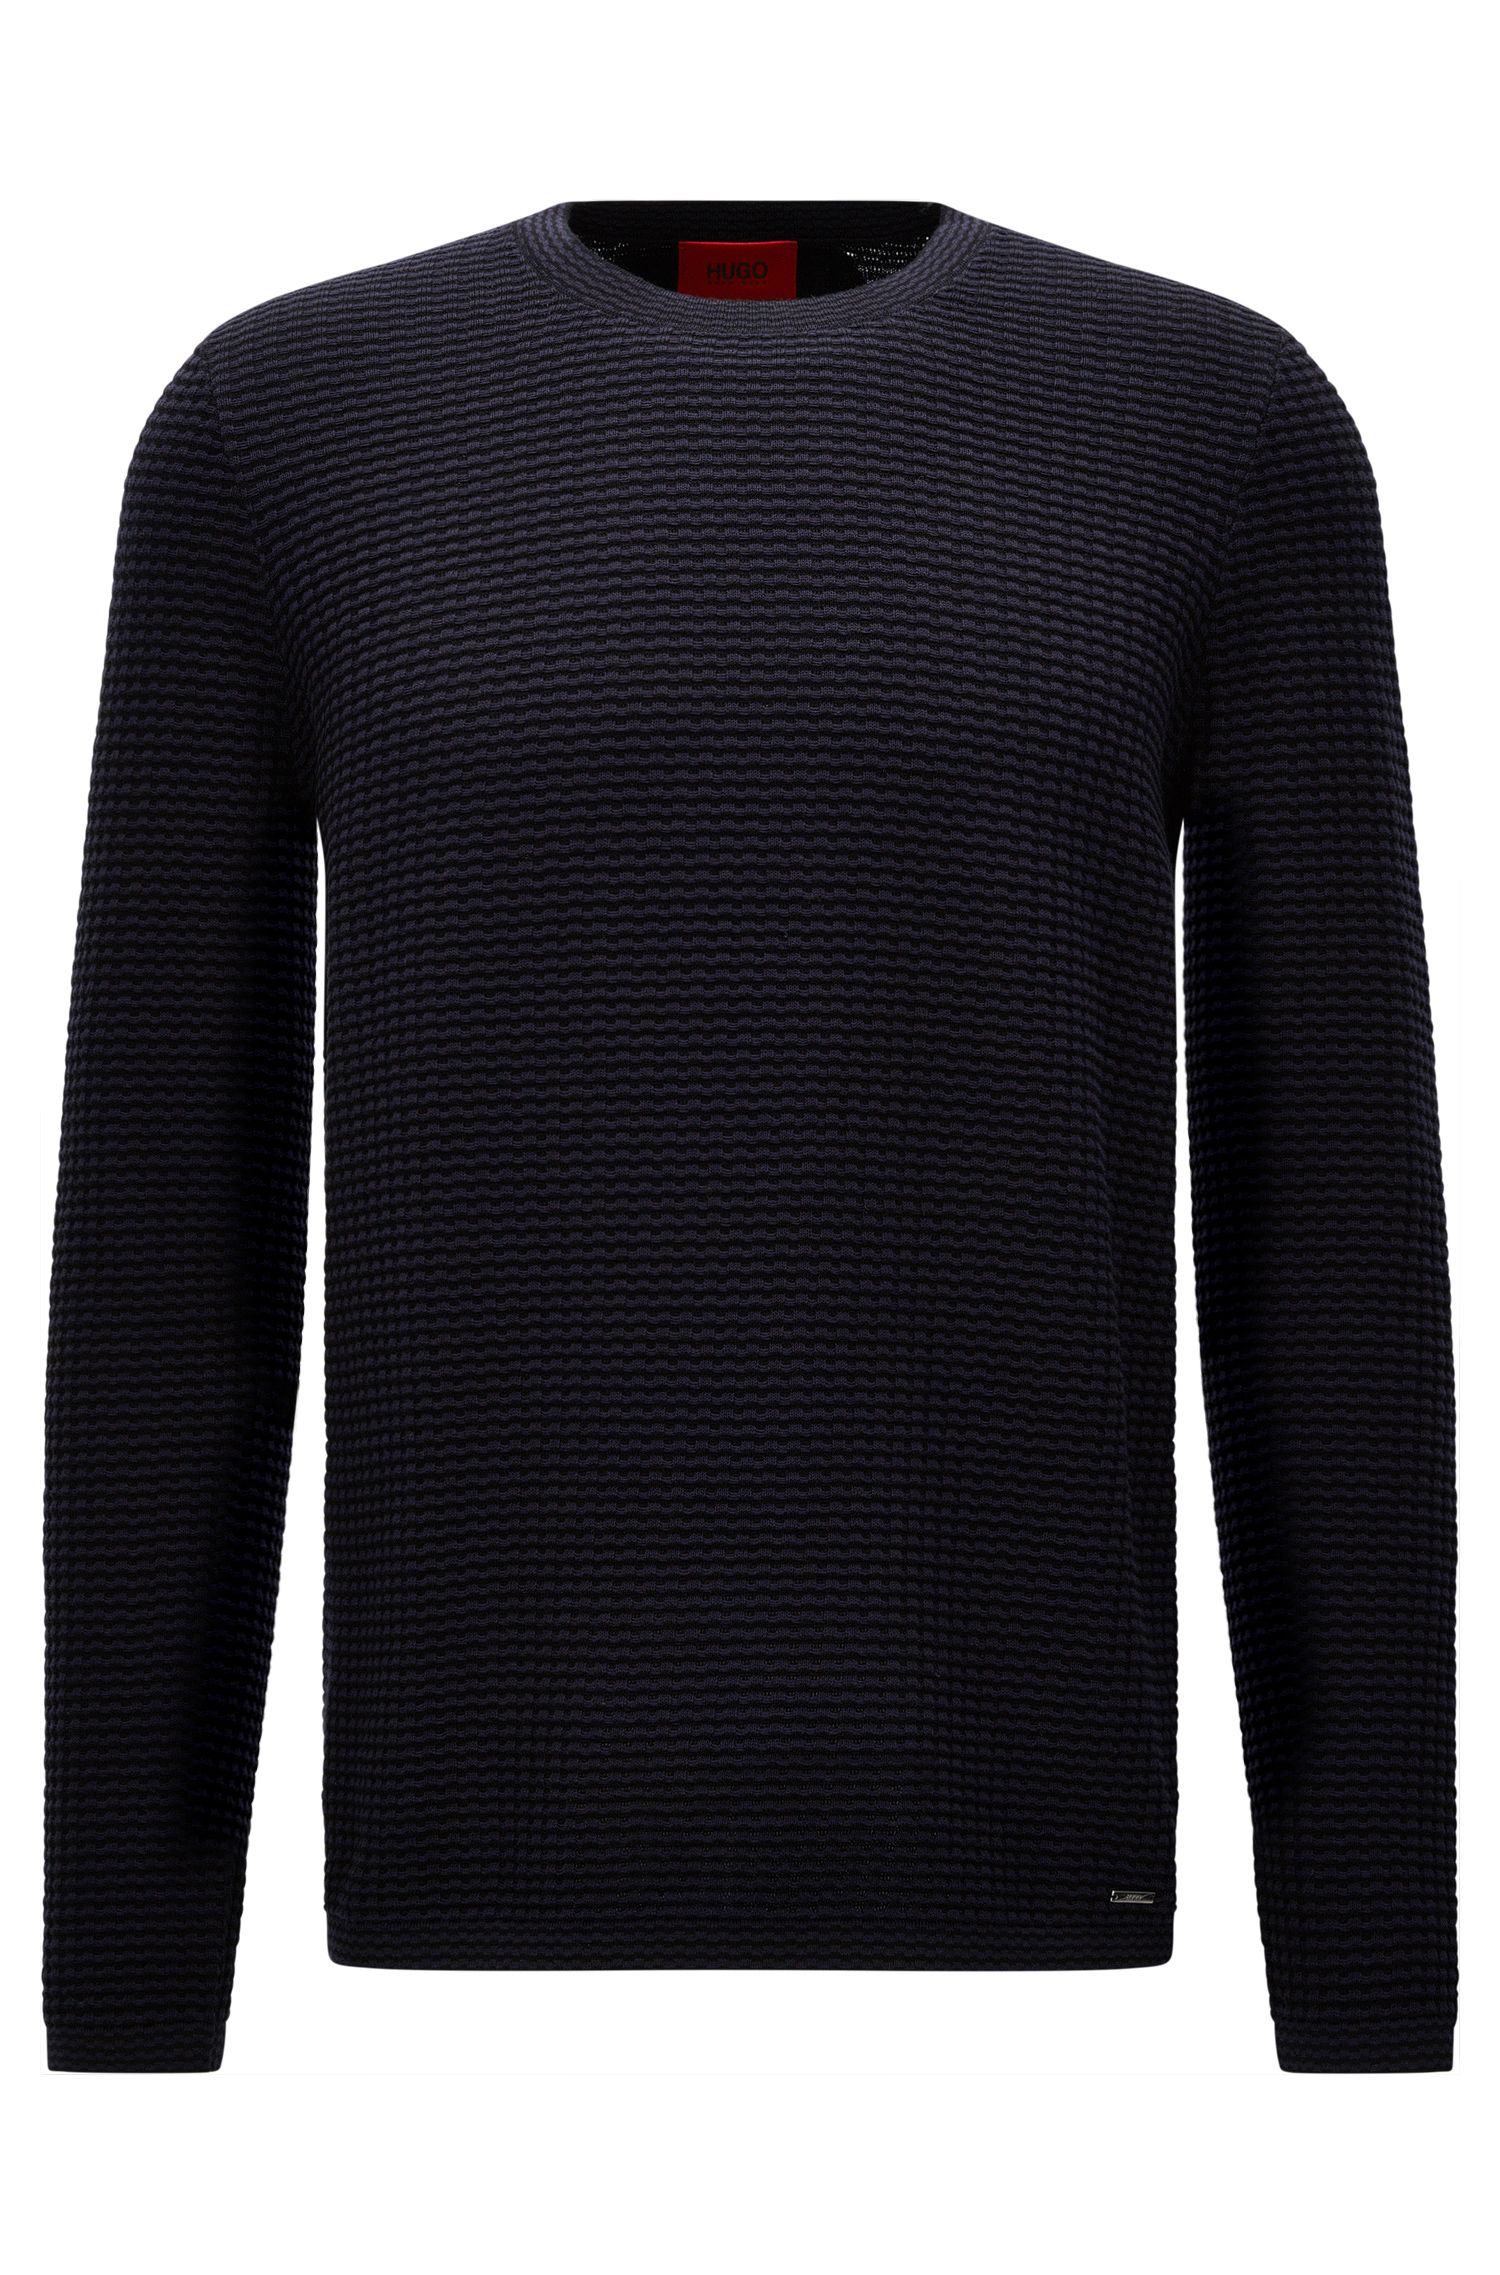 Oversized-fit sweater in textured cotton: 'Stanch'